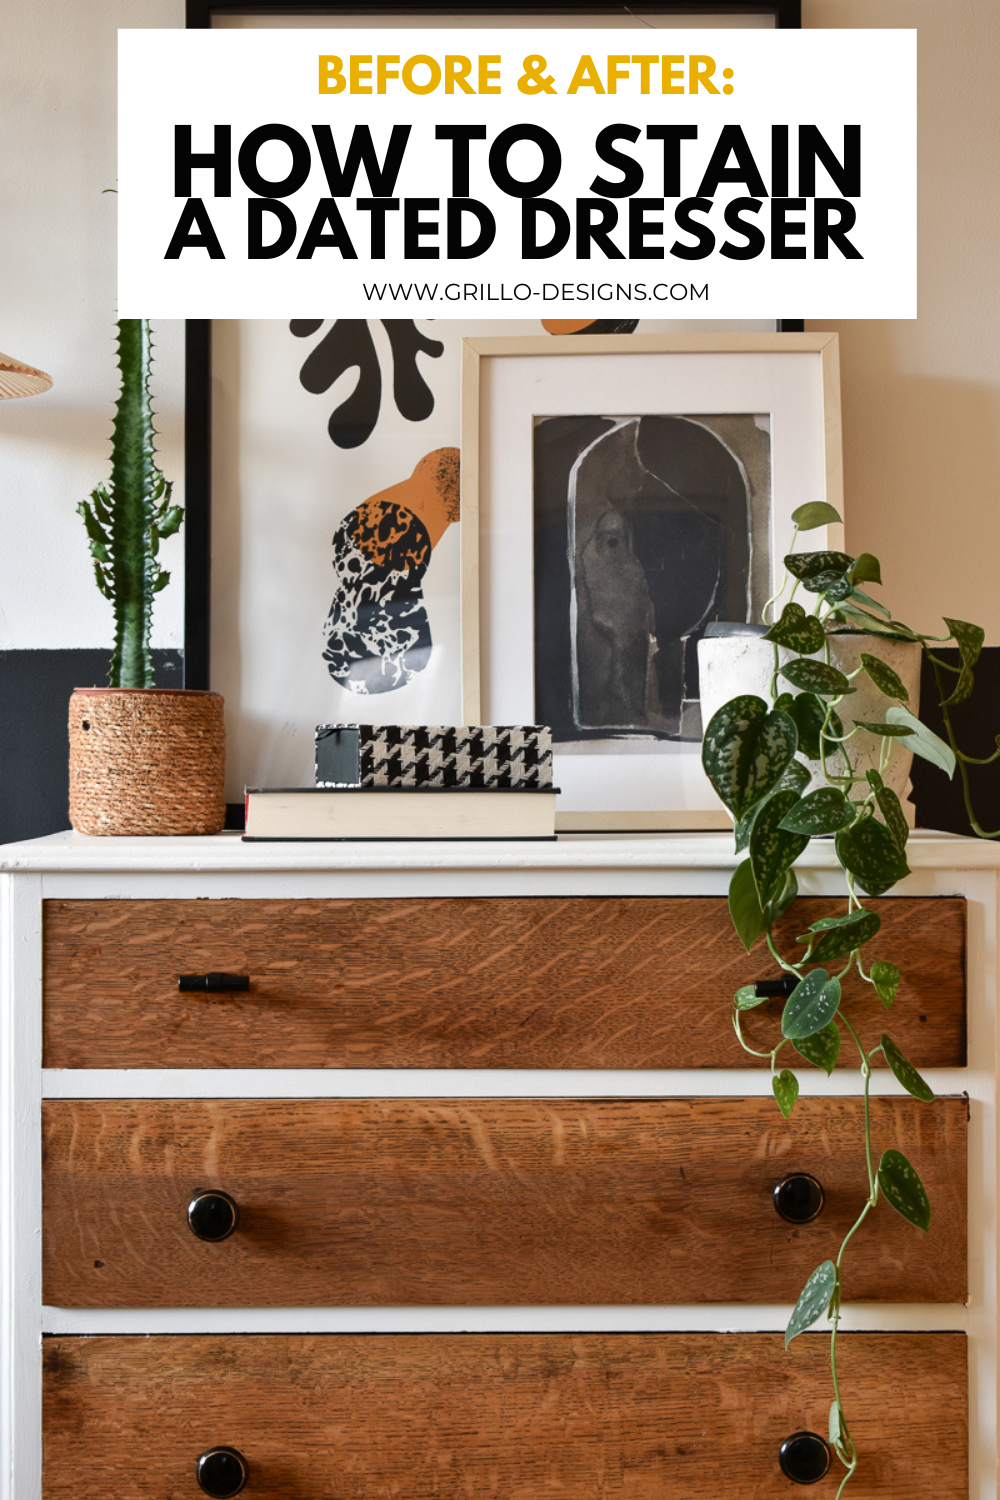 Before & after how to stain a dated dresser pinterest graphic